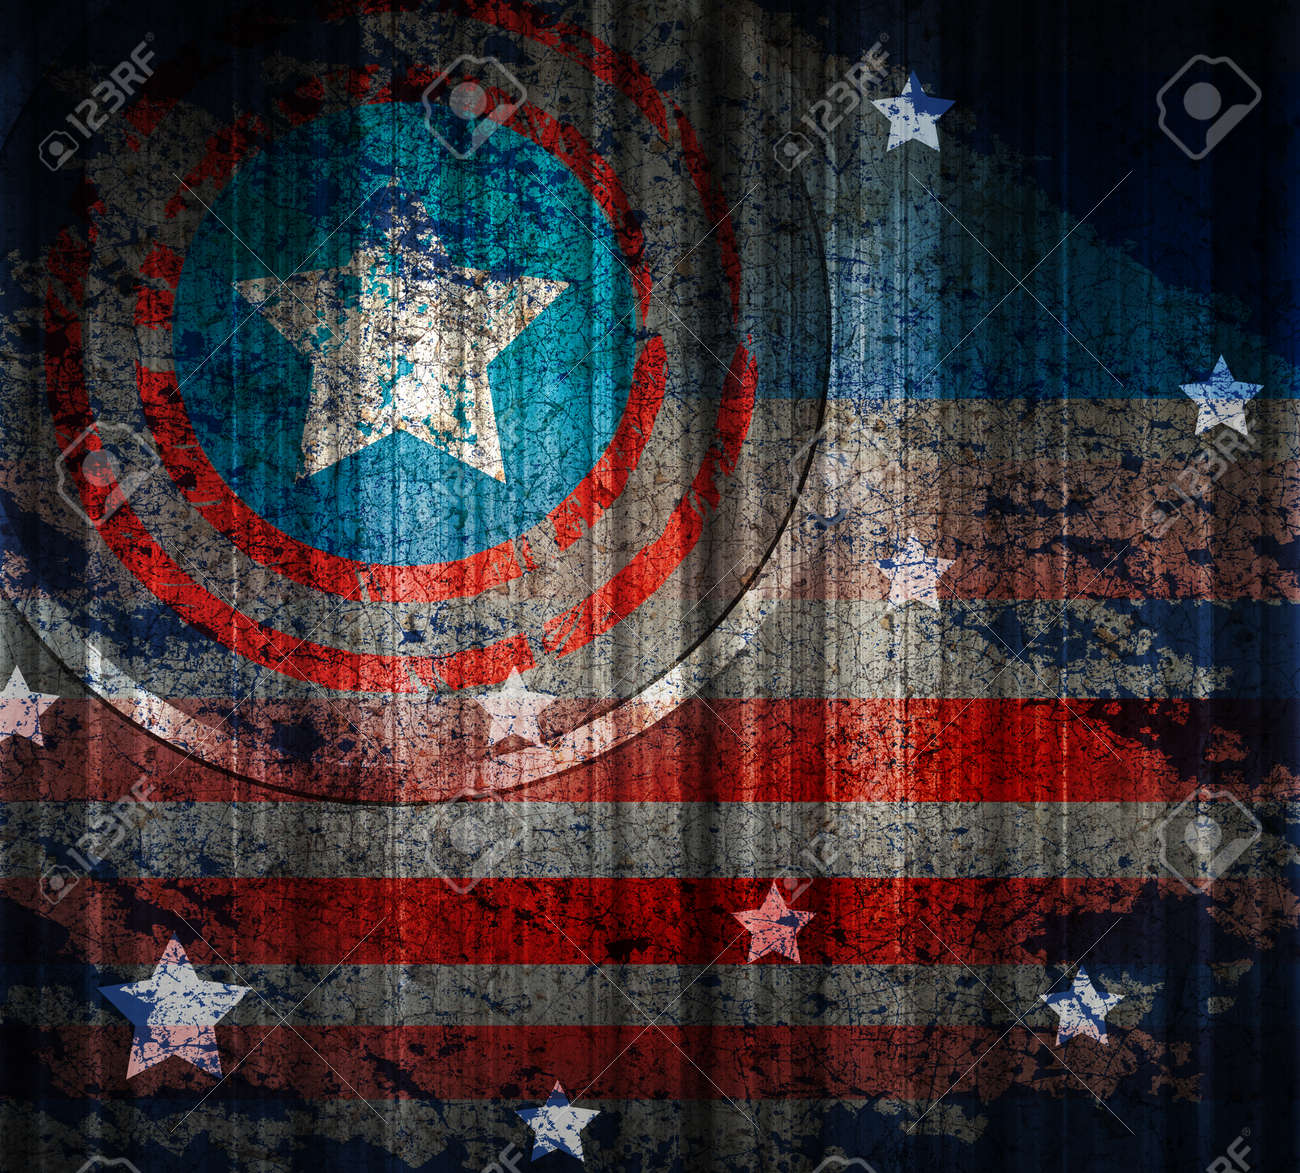 3ac9e03d7b4 American flag vintage textured background. Stock Photo - 32843749